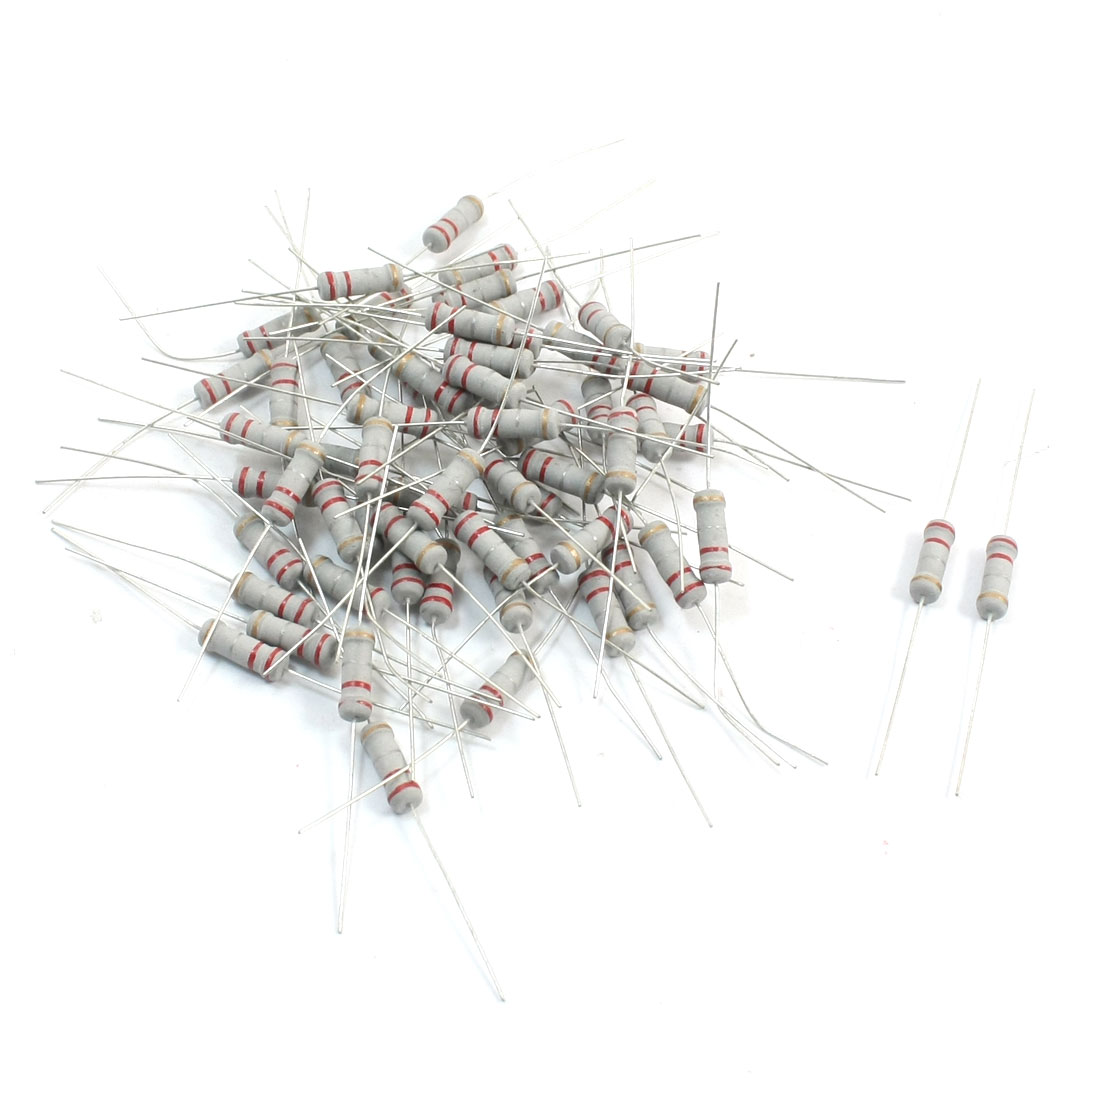 60Pcs 1W 0.22 Ohm 5% Tolerance Axial Lead Surface Mounting Colored Ring Carbon Film Resistors 3.5mm x 11mm